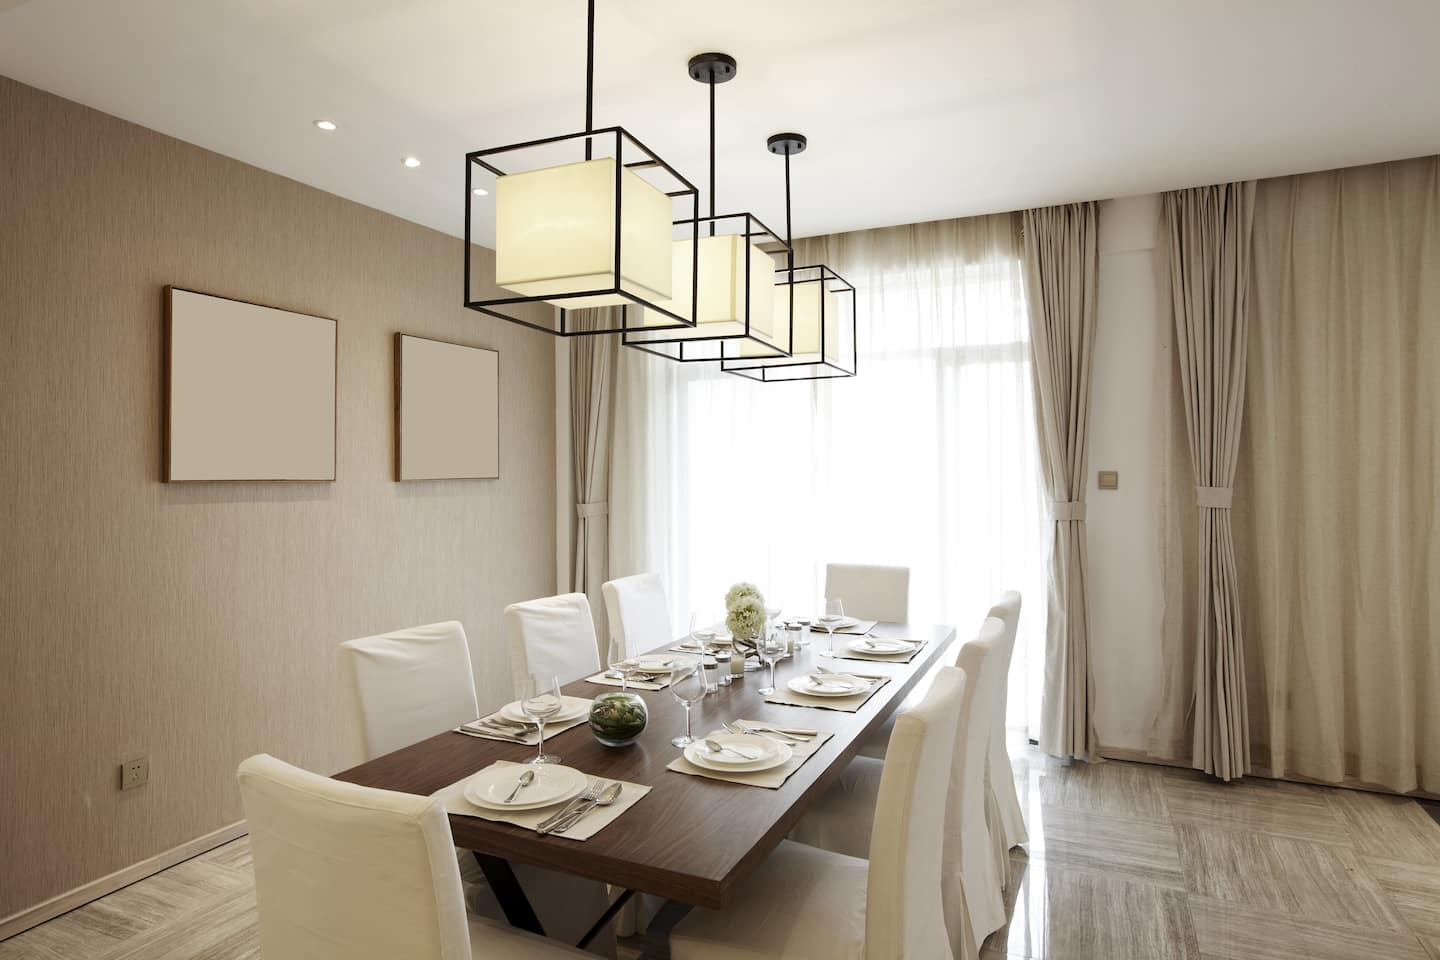 Wonderful Contemporary Formal Dining Room With Modern Elements, And Off White Drapes  Layered Over Sheer Part 23